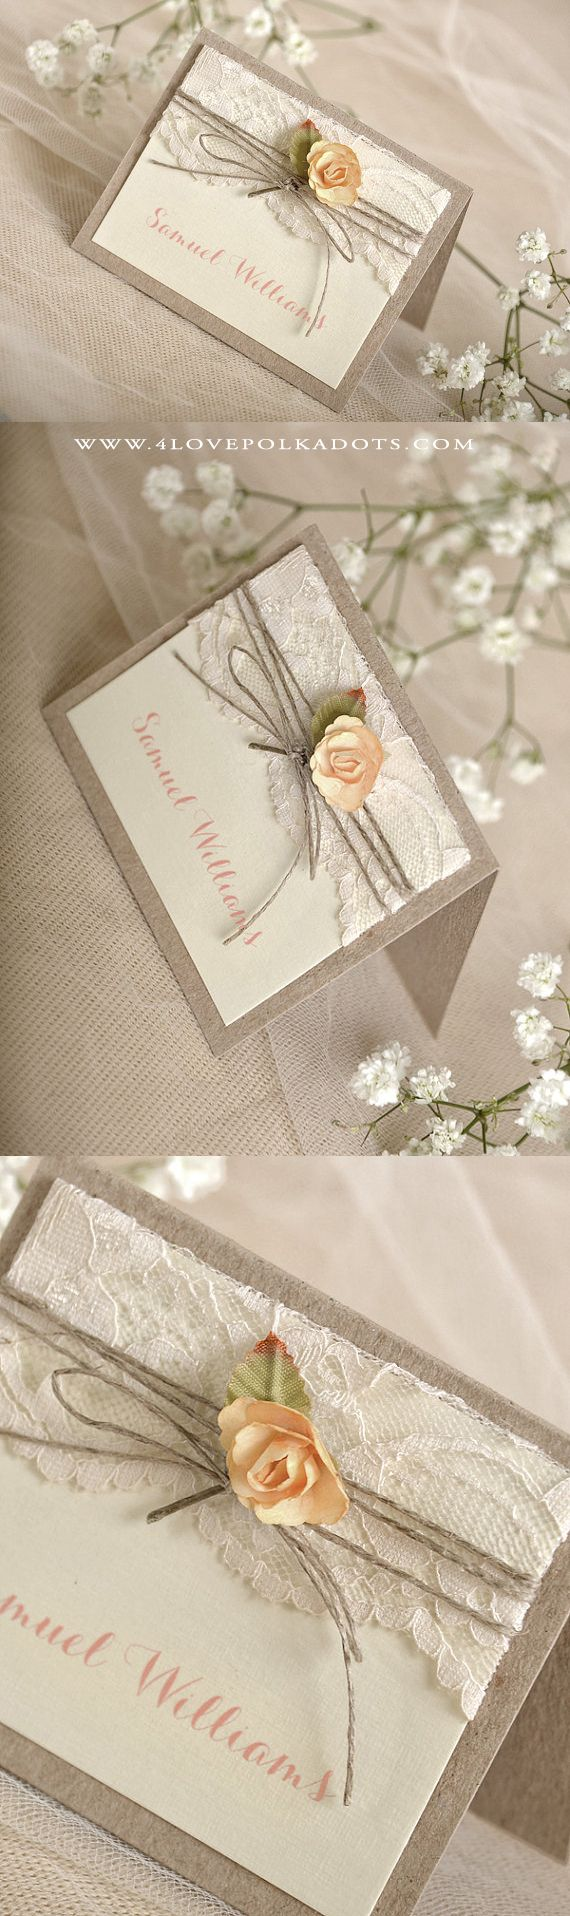 PLACE CARDS rustic and lace | Weddingideas, Place card and Romantic